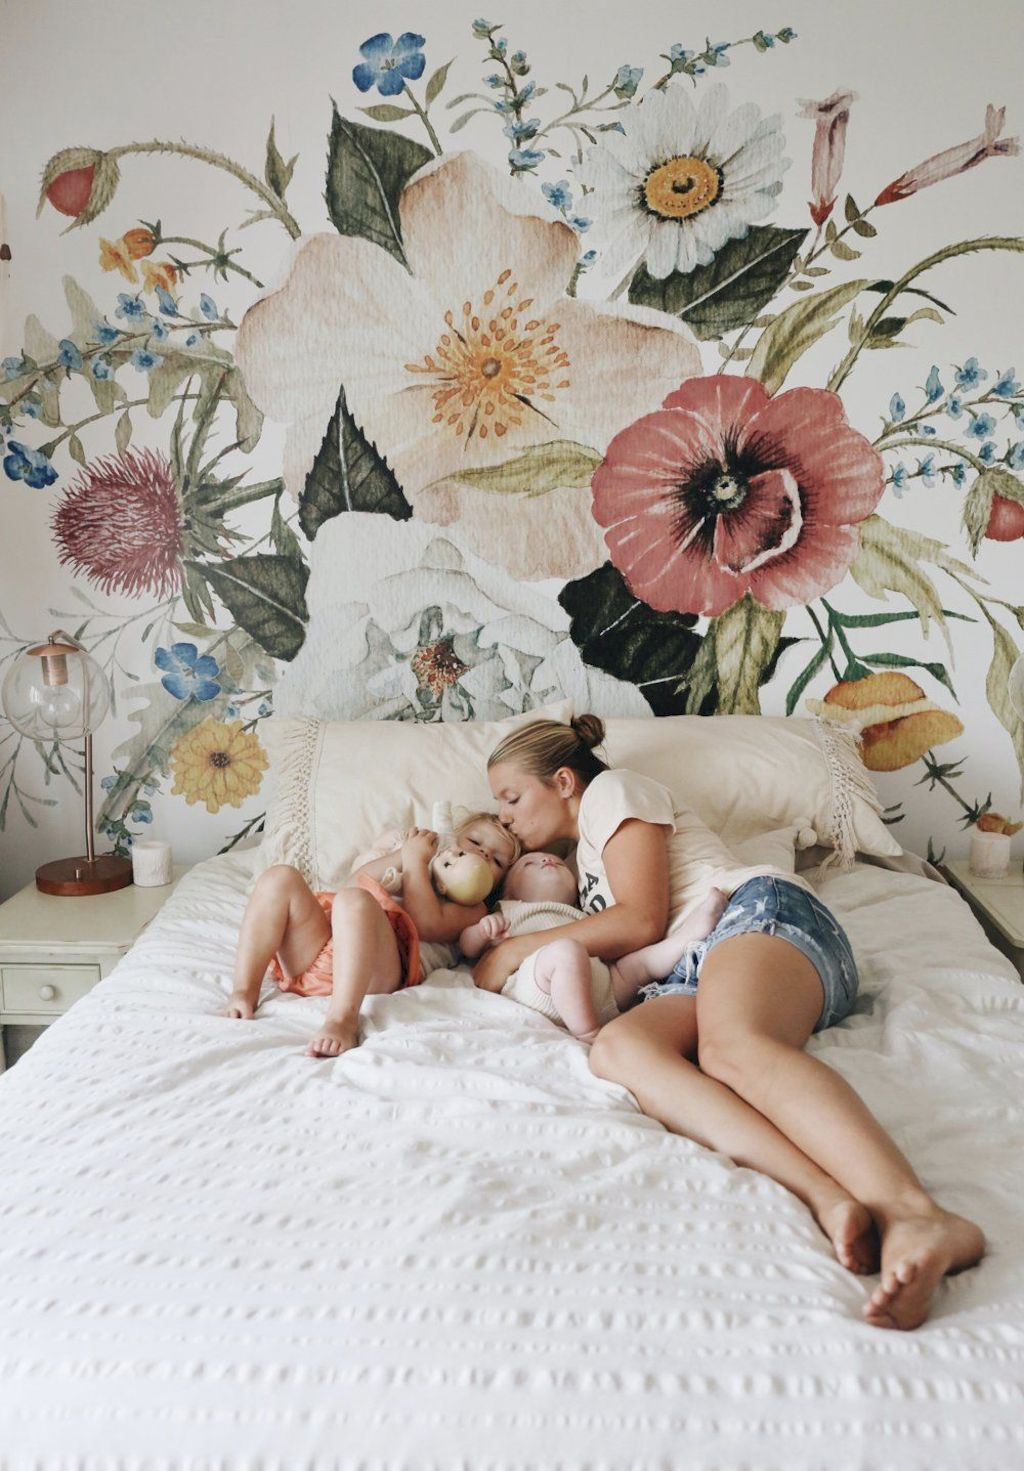 Beautiful wall decal stickers art for nursery and kids room decor with watercolor floral style showing off vintage baby room vibes Image 12